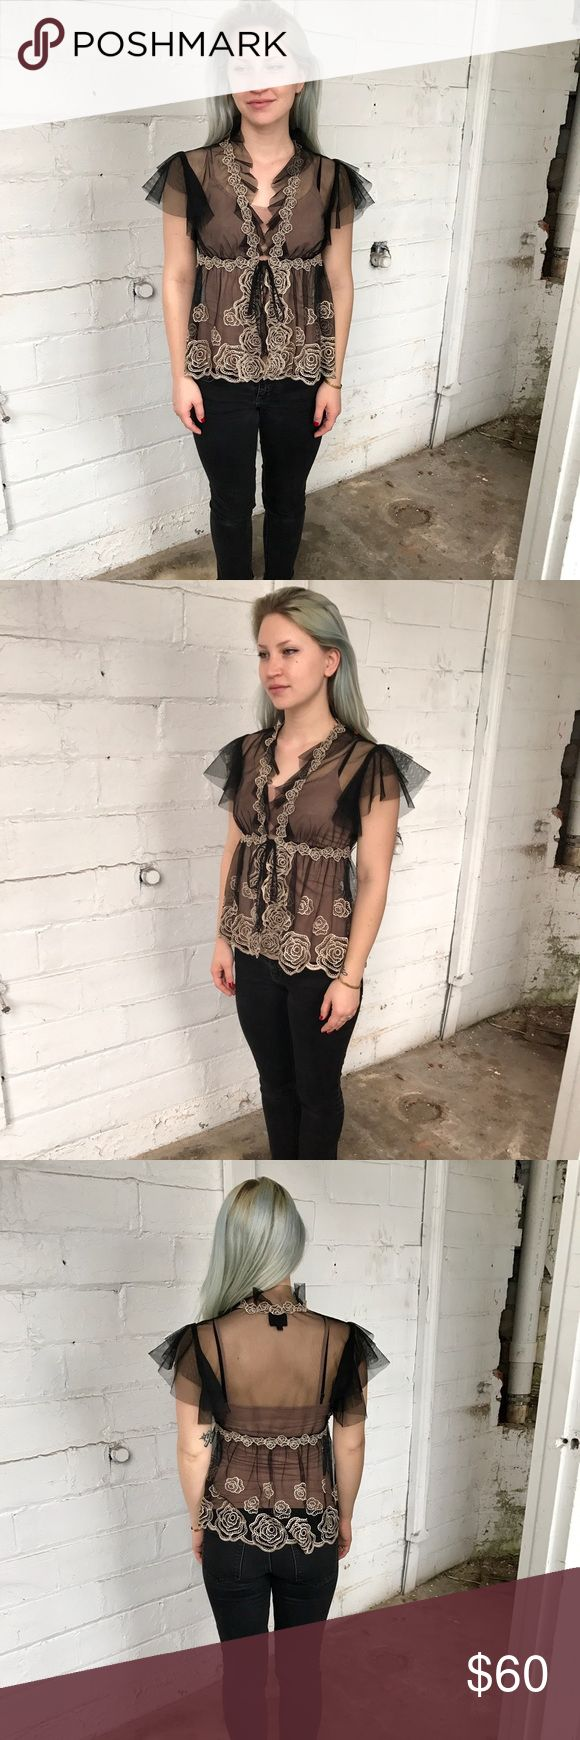 ANNA SUI top! This is a beautiful ANNA SUI black mesh polynet with gold rose embroidery top! Has a tie in the front, so it could be worn open! Measures 21 inches in length, bust measures 15 inches and waist when fully tied measures 14 inches. Anna Sui Tops Blouses